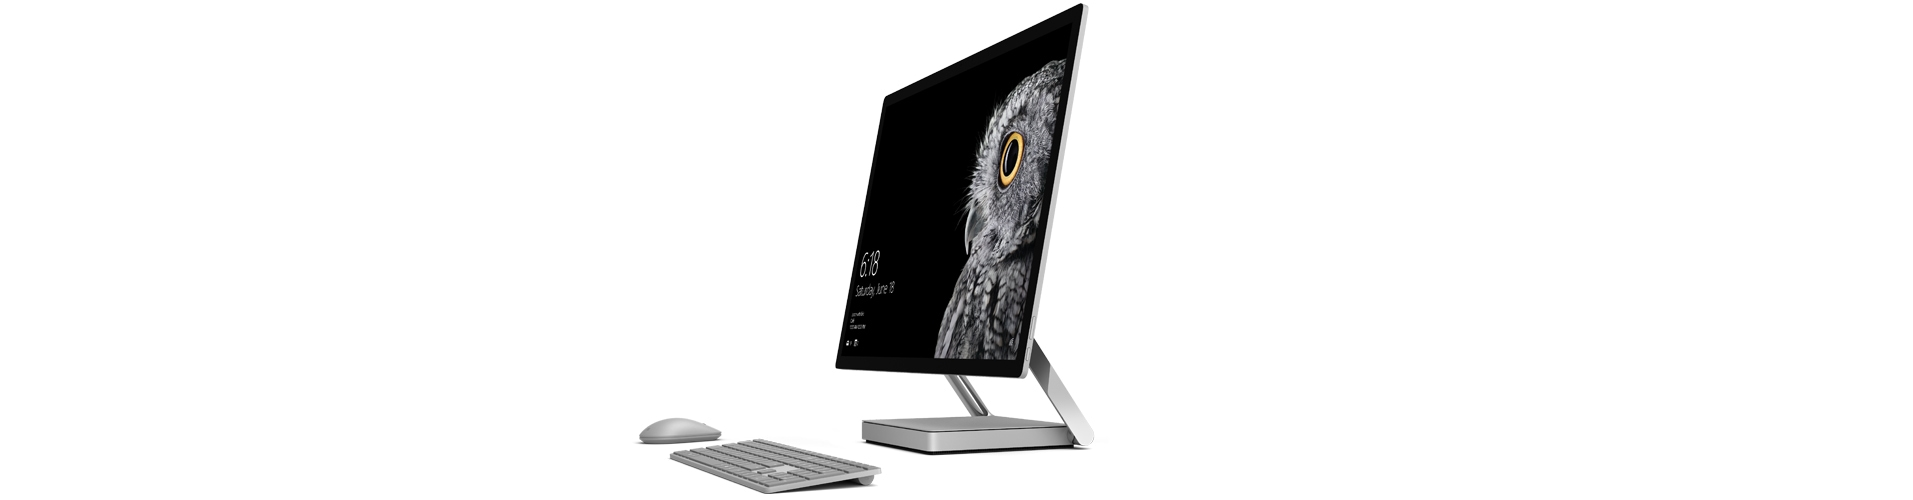 Surface Studio i oprejst position med Surface Mouse og Keyboard.